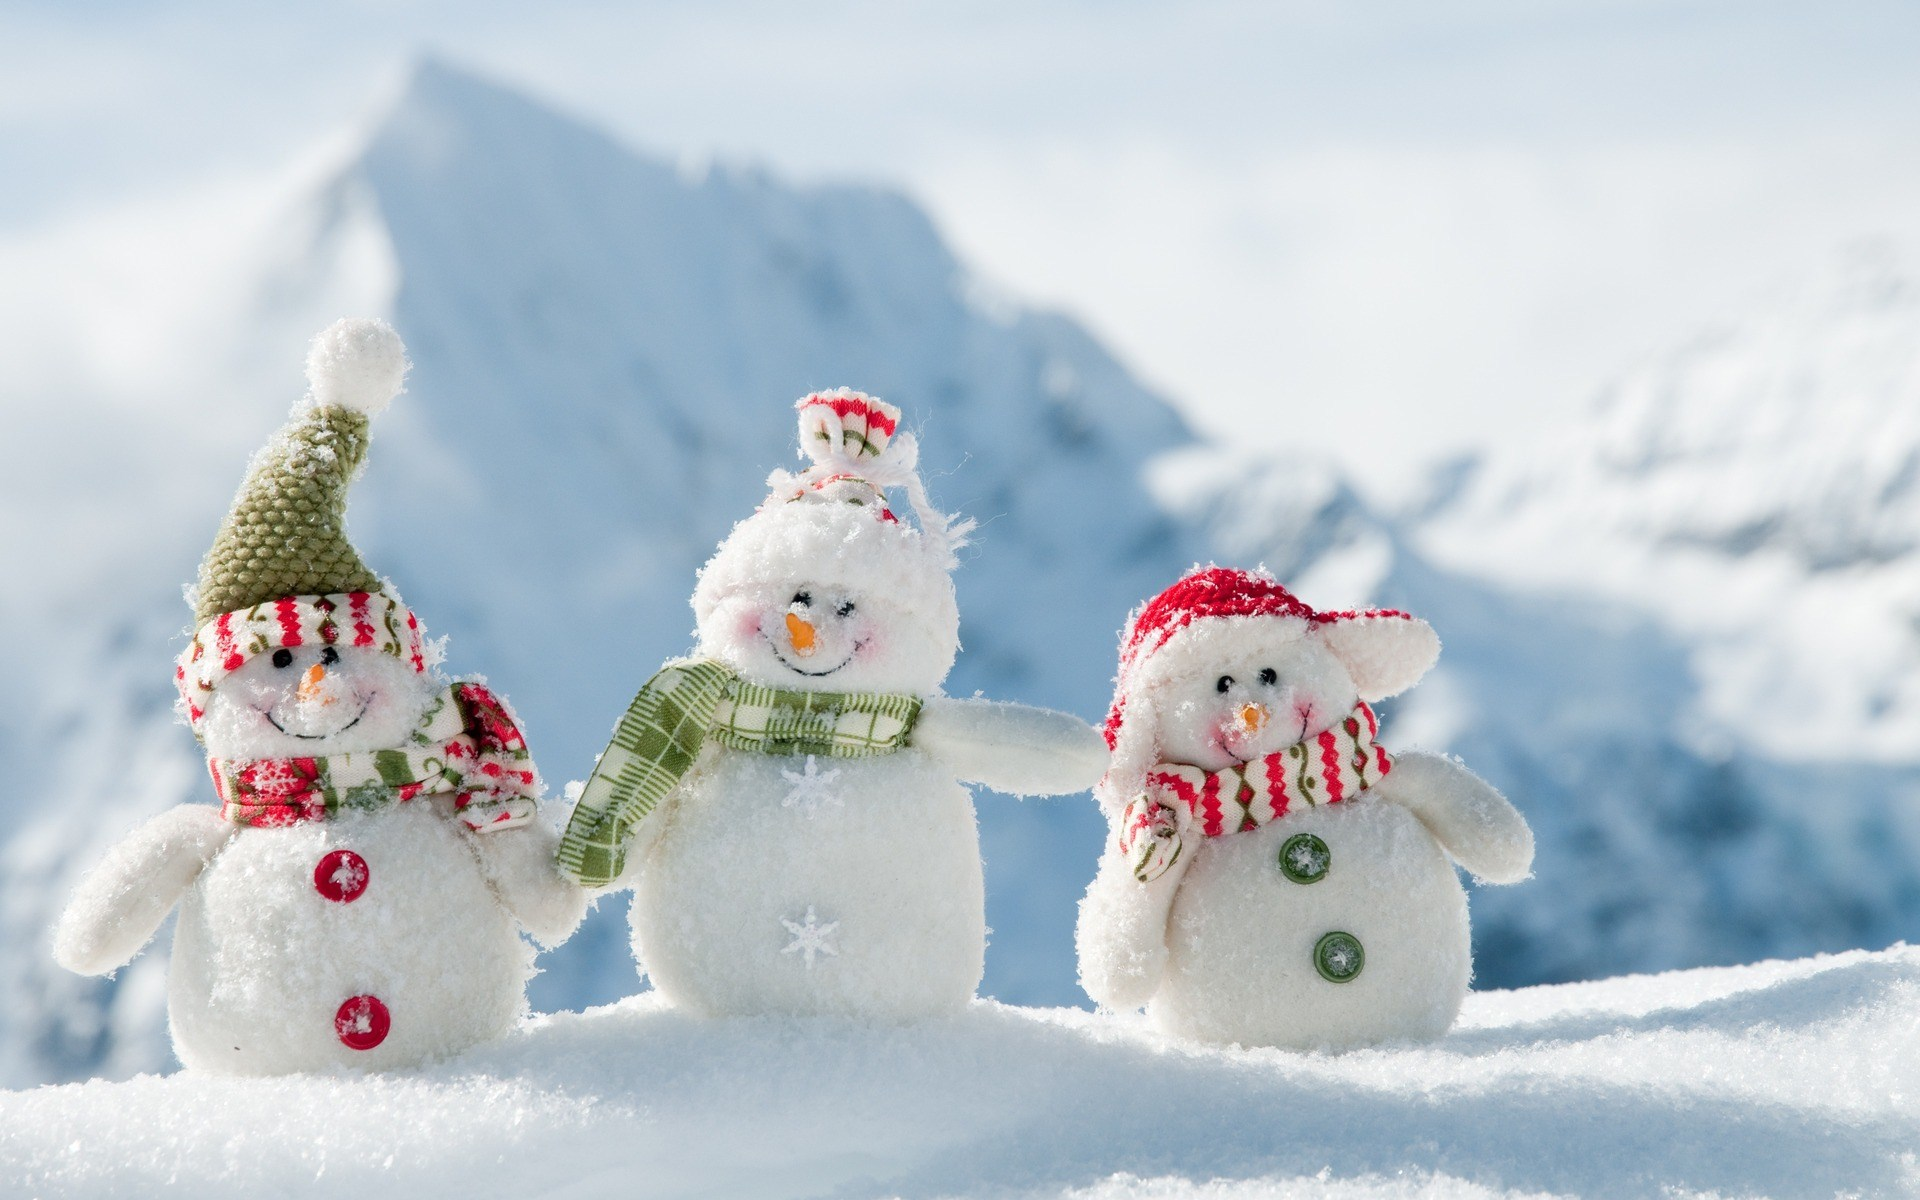 White-snowmans-winter-new-year-1920x1200-1